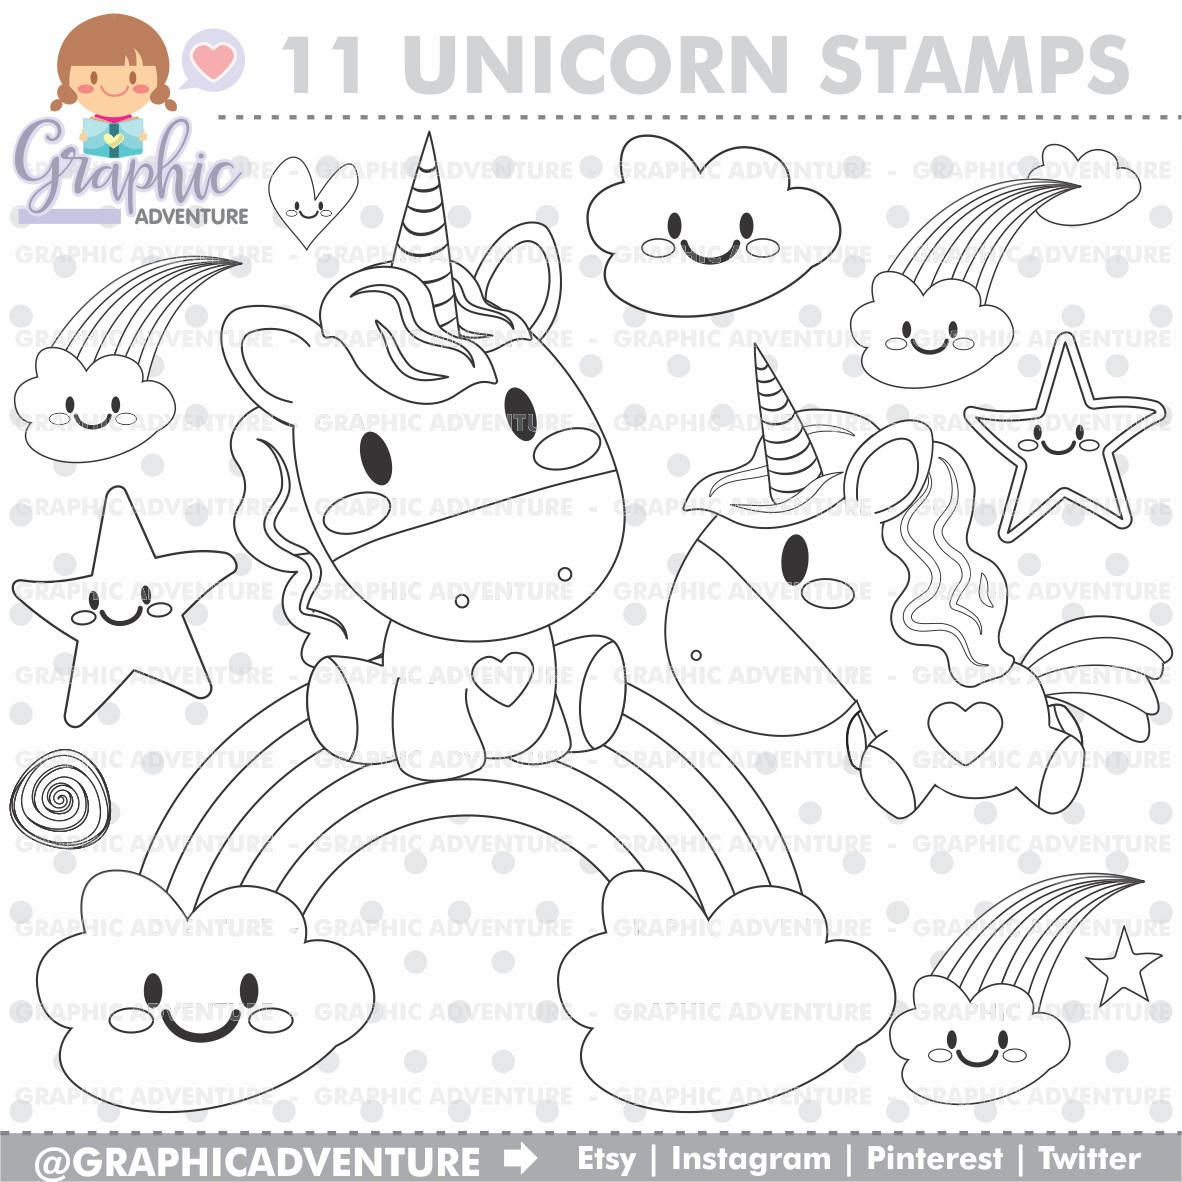 Unicorn Stamps Rainbow Stamps Fairy Tale Stamps